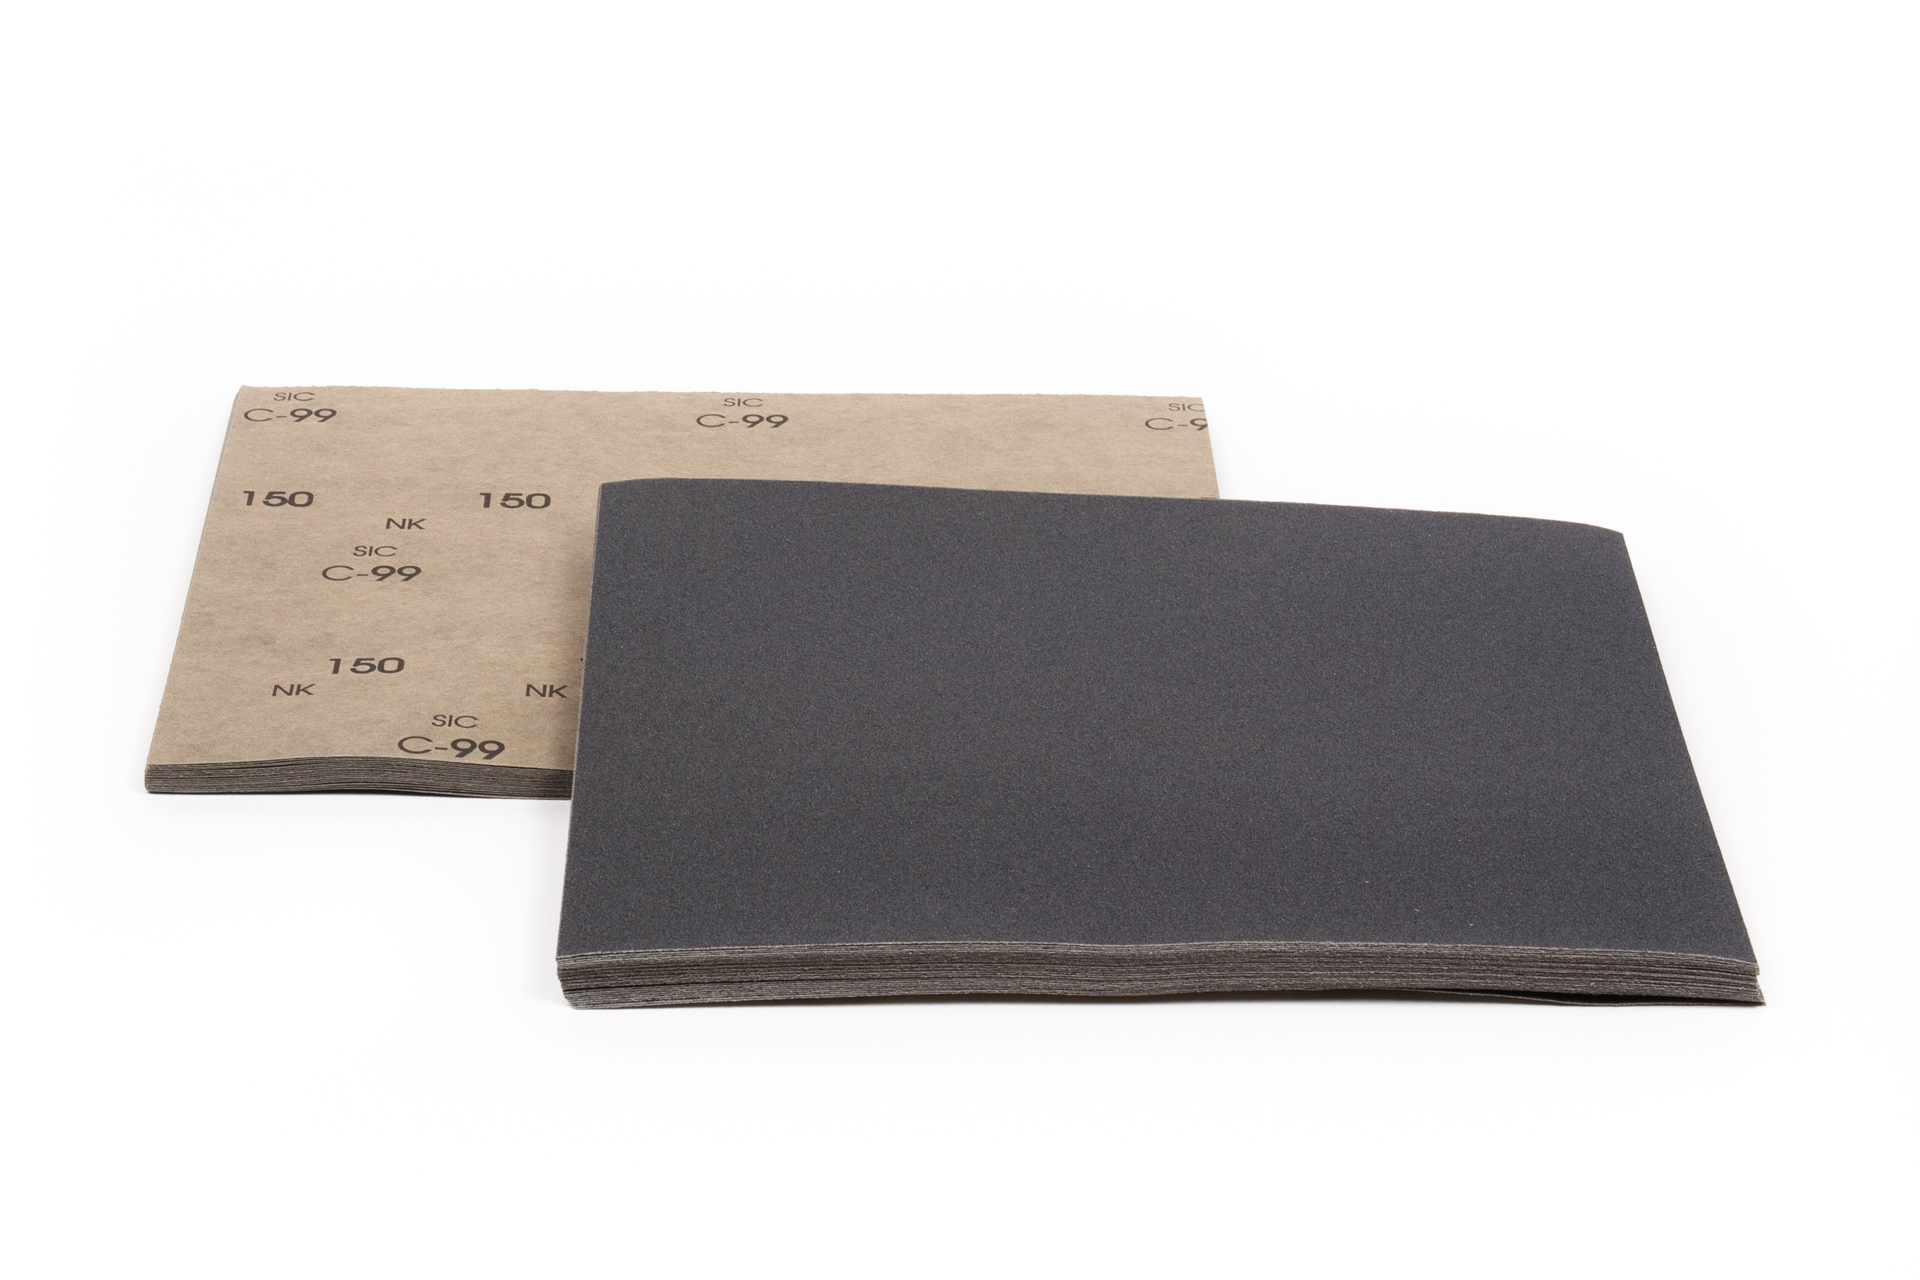 9x11 sand paper sheets